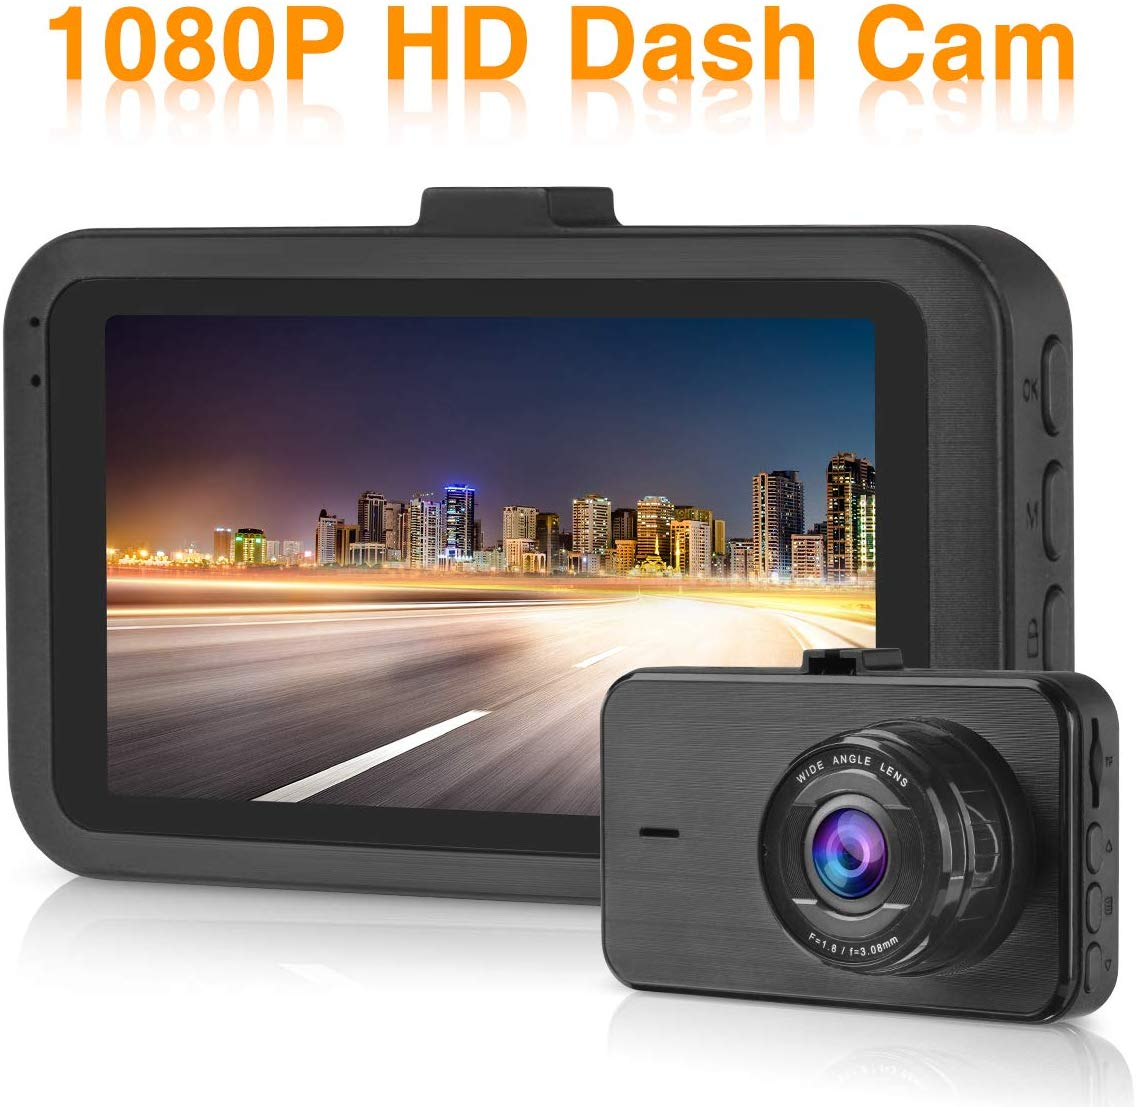 Dash Cam 1080P Full HD Car Dashboard Camera Video Recorder for Cars 3.0″ LCD Screen 170° Wide Angle Night Vision Driving Recorder